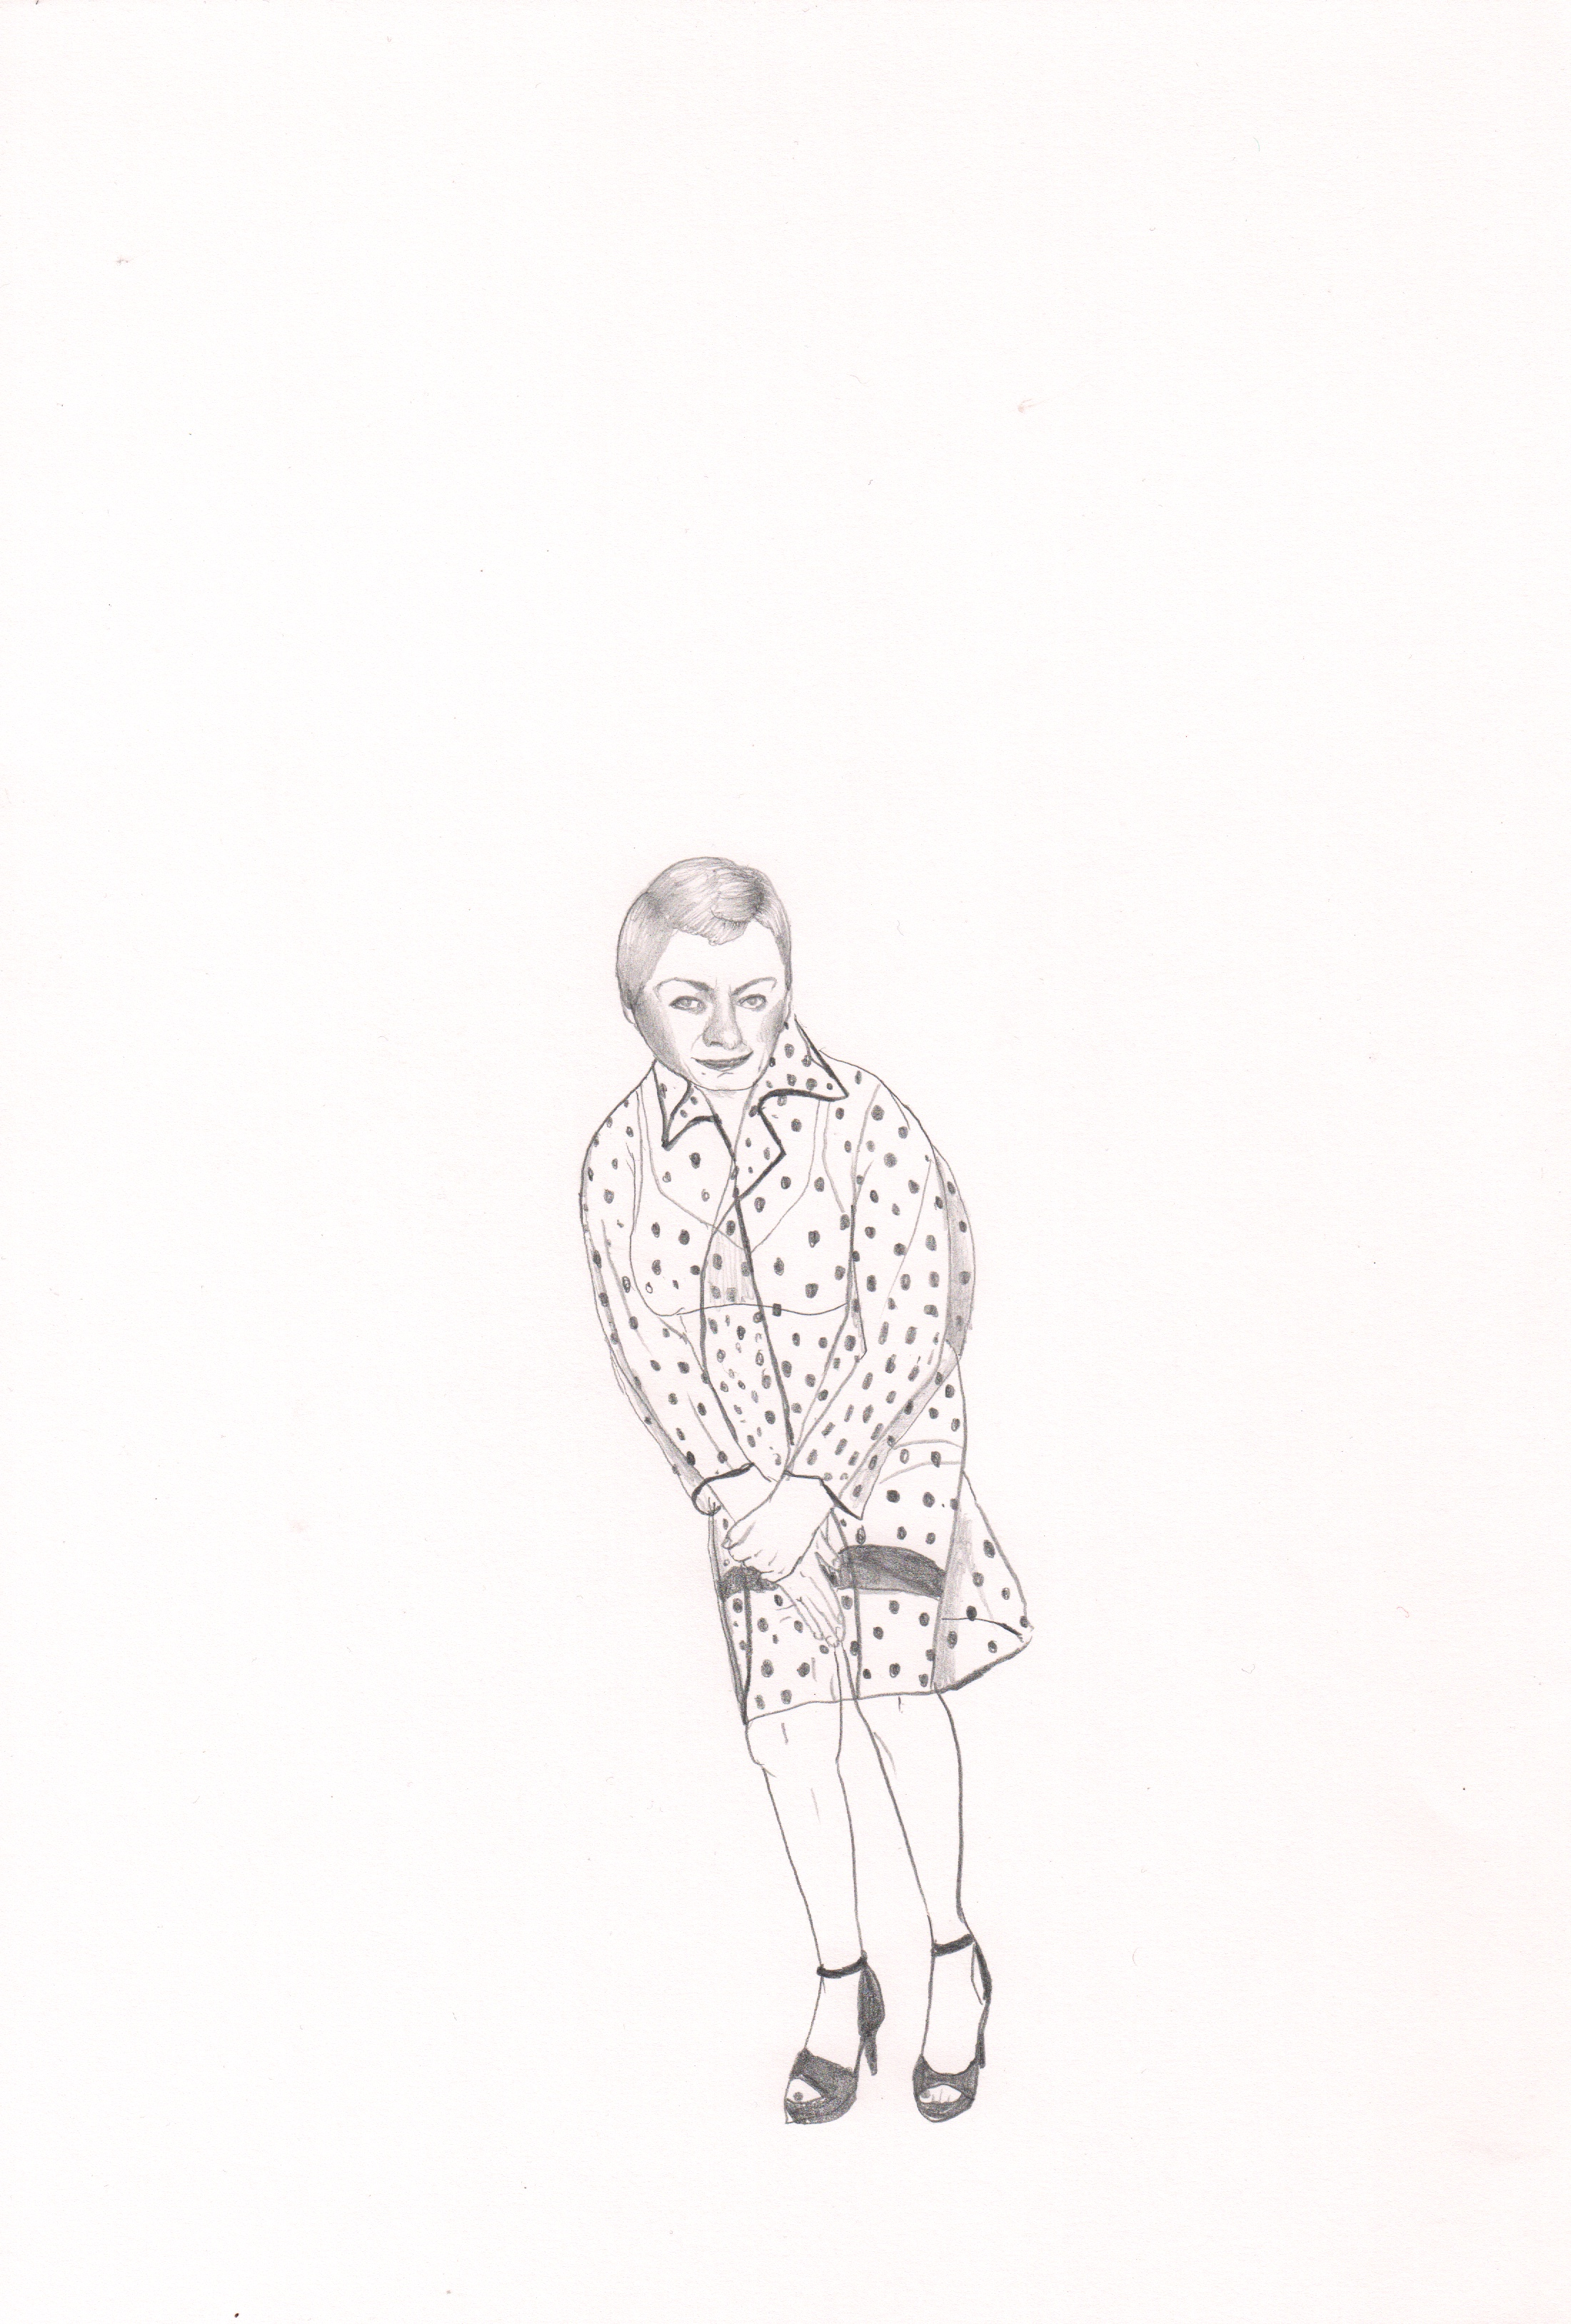 Erica Eyres, PVC Dress, 2018, pencil on paper, 16.5 x 12 inches